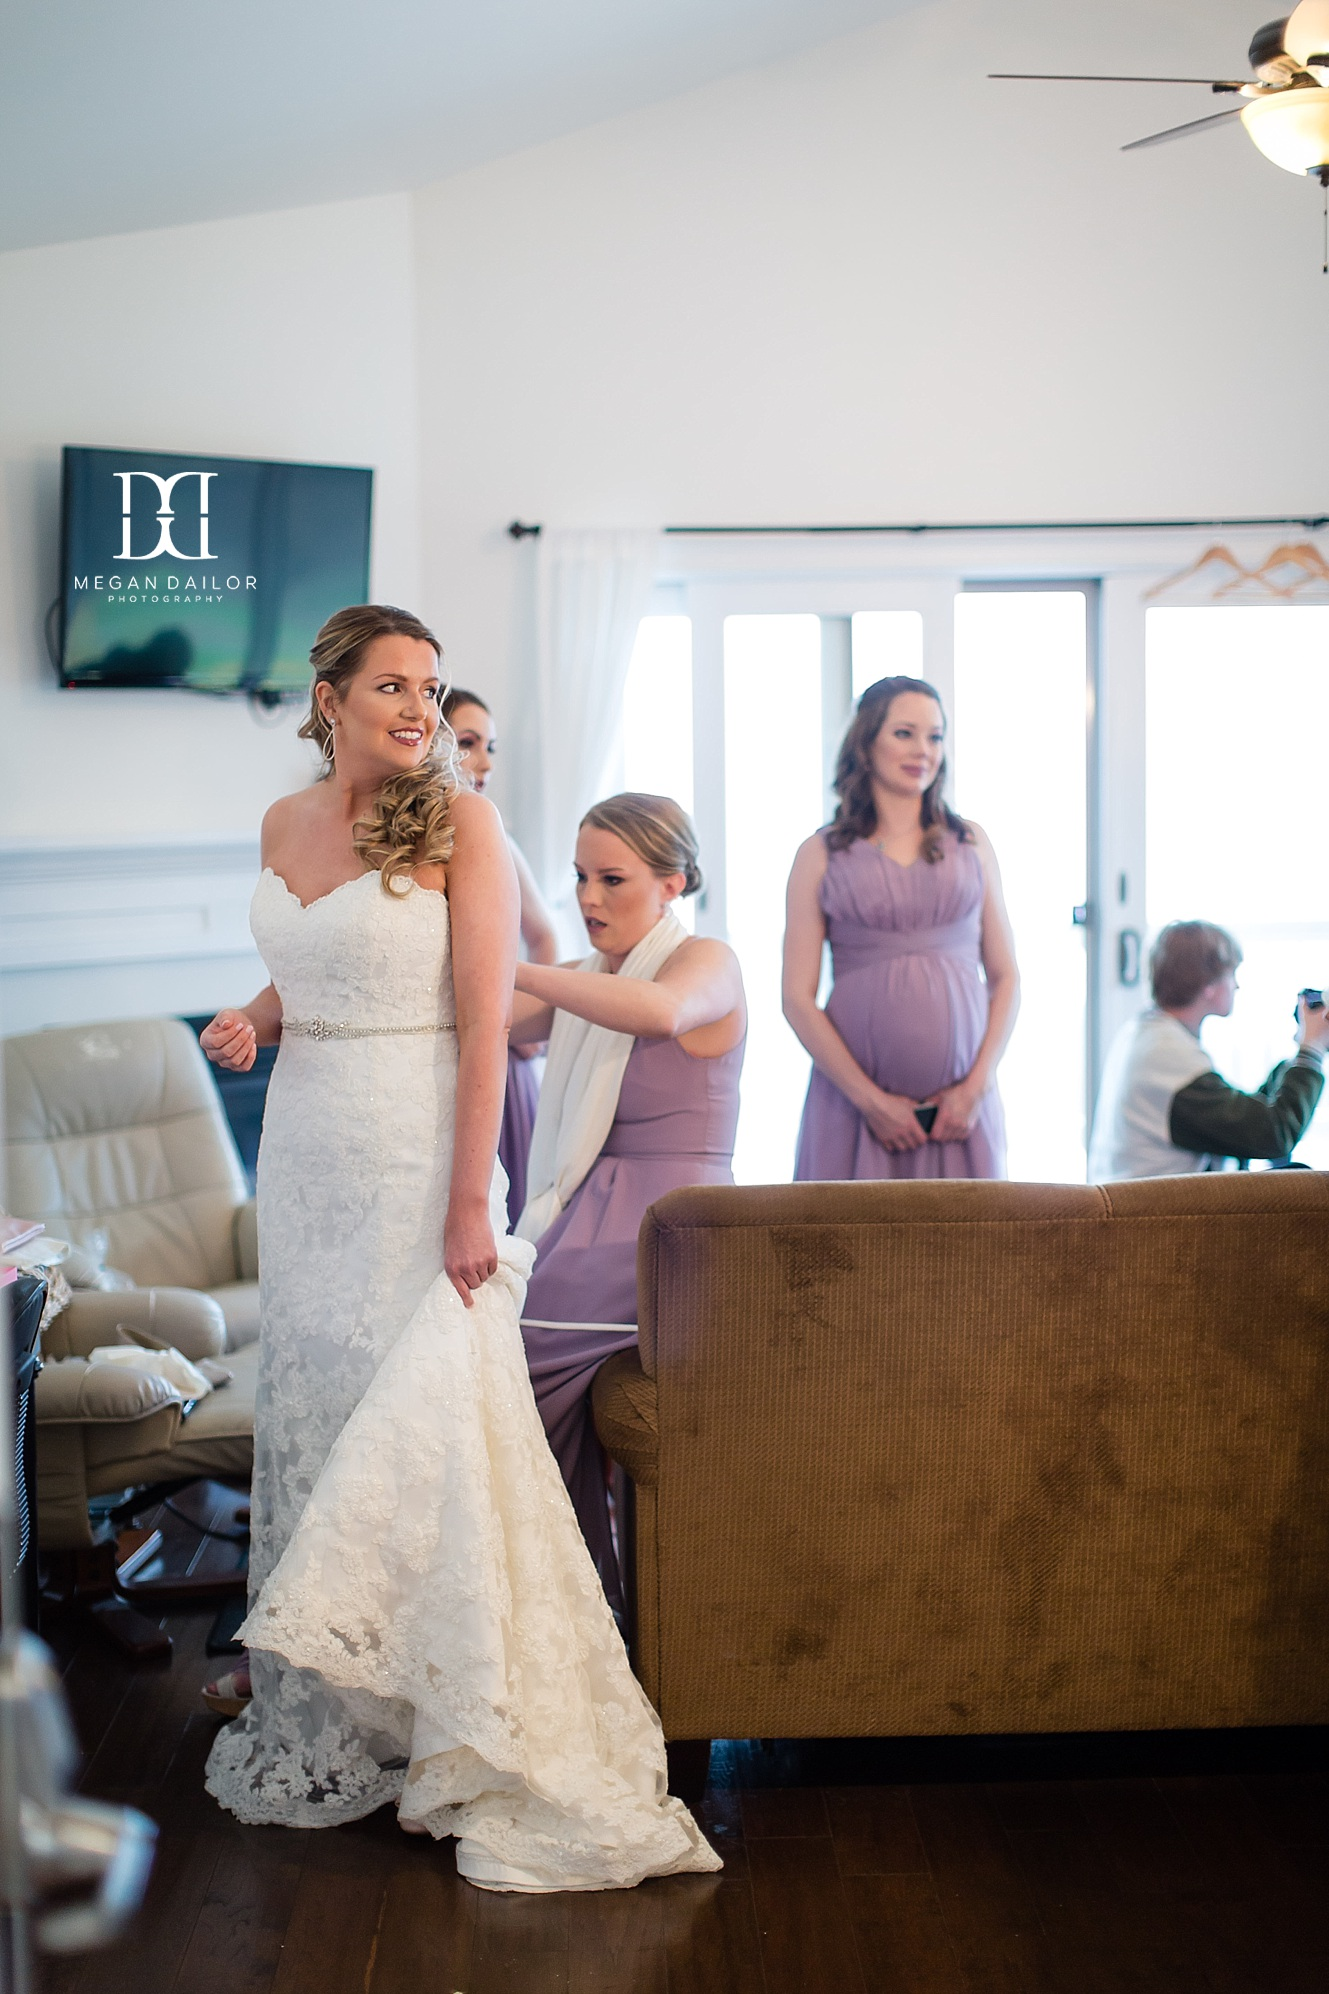 bristolharbourweddingphotos-04